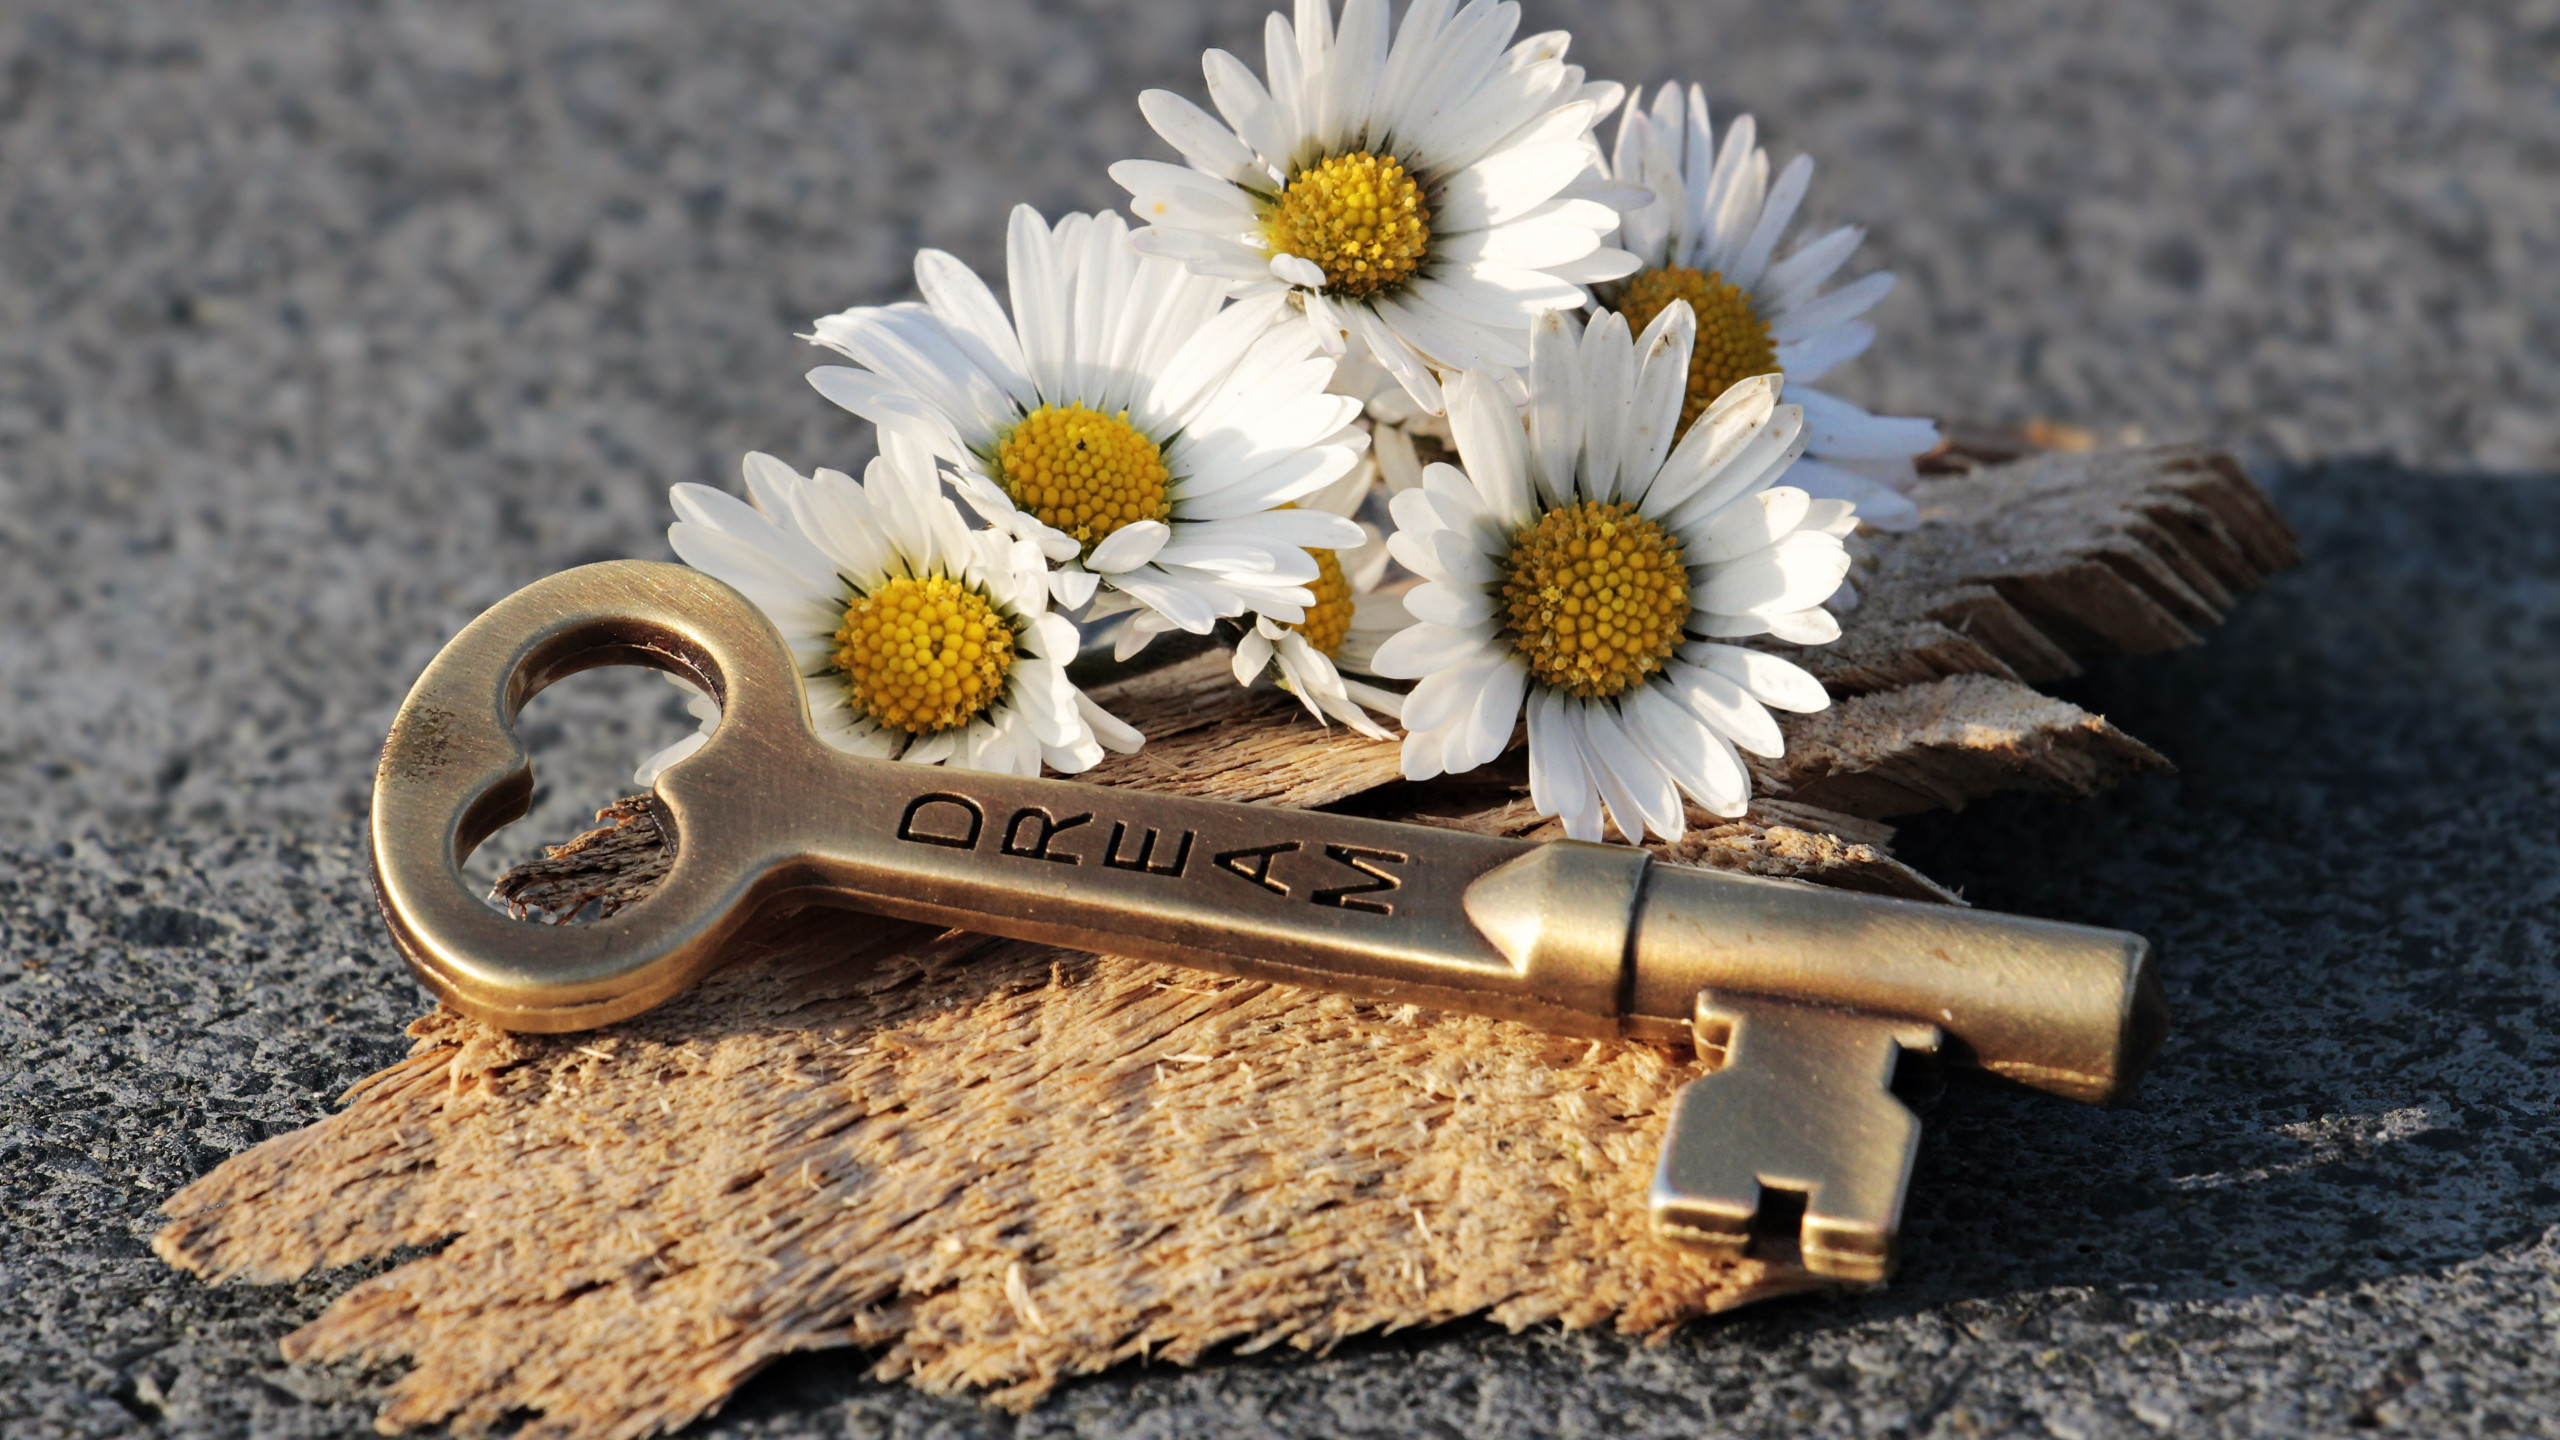 The dreams key and daisy flowers | 2560x1440 wallpaper